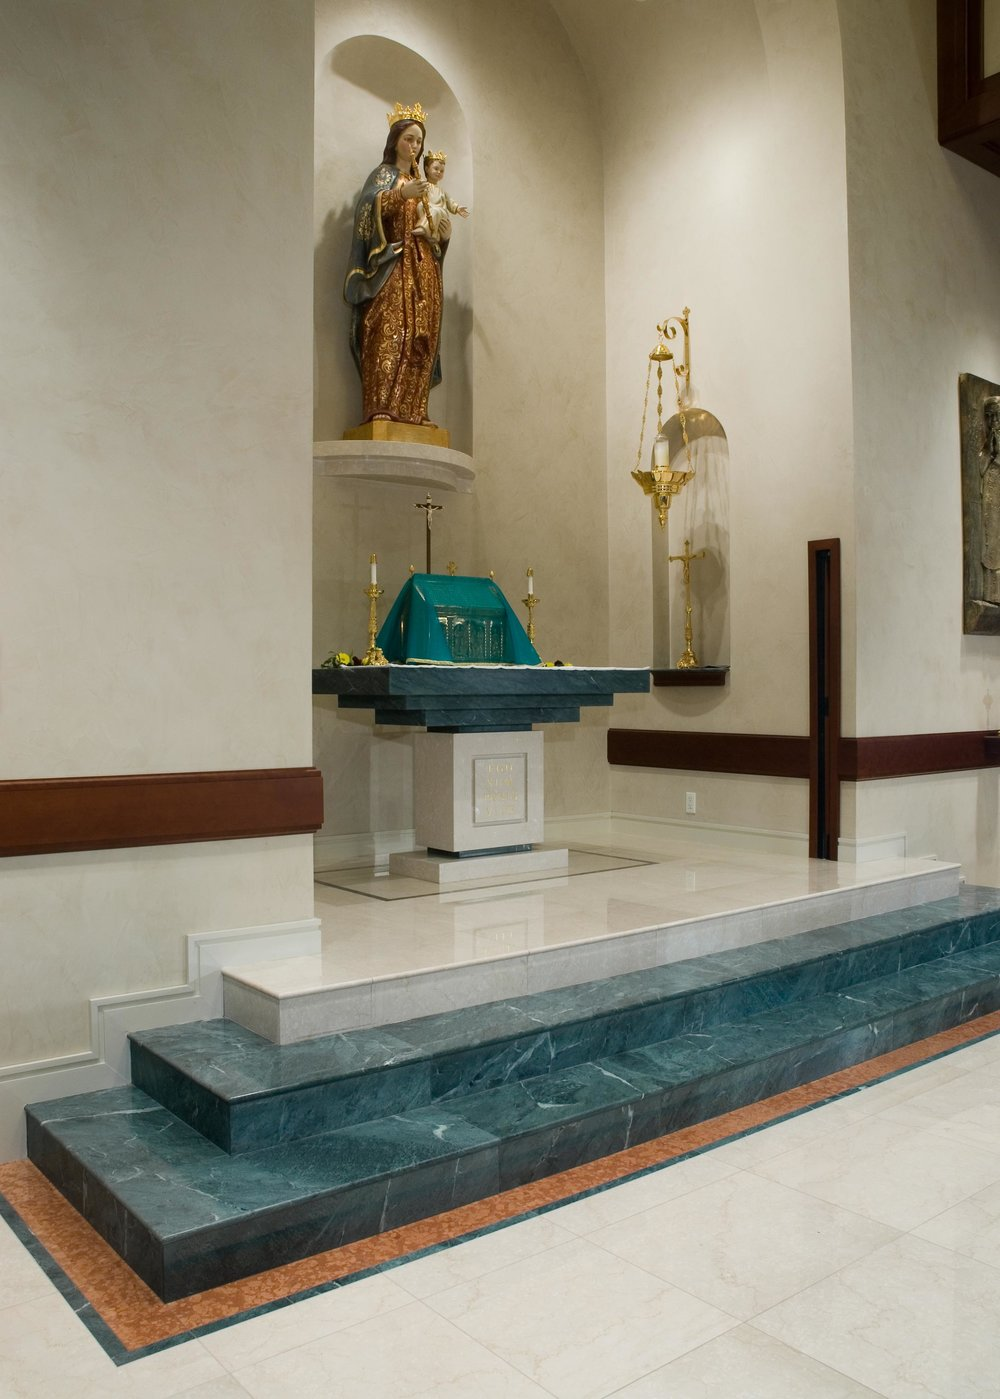 Reston-Study-Cntr-001-steps-and-rear-altar.jpg